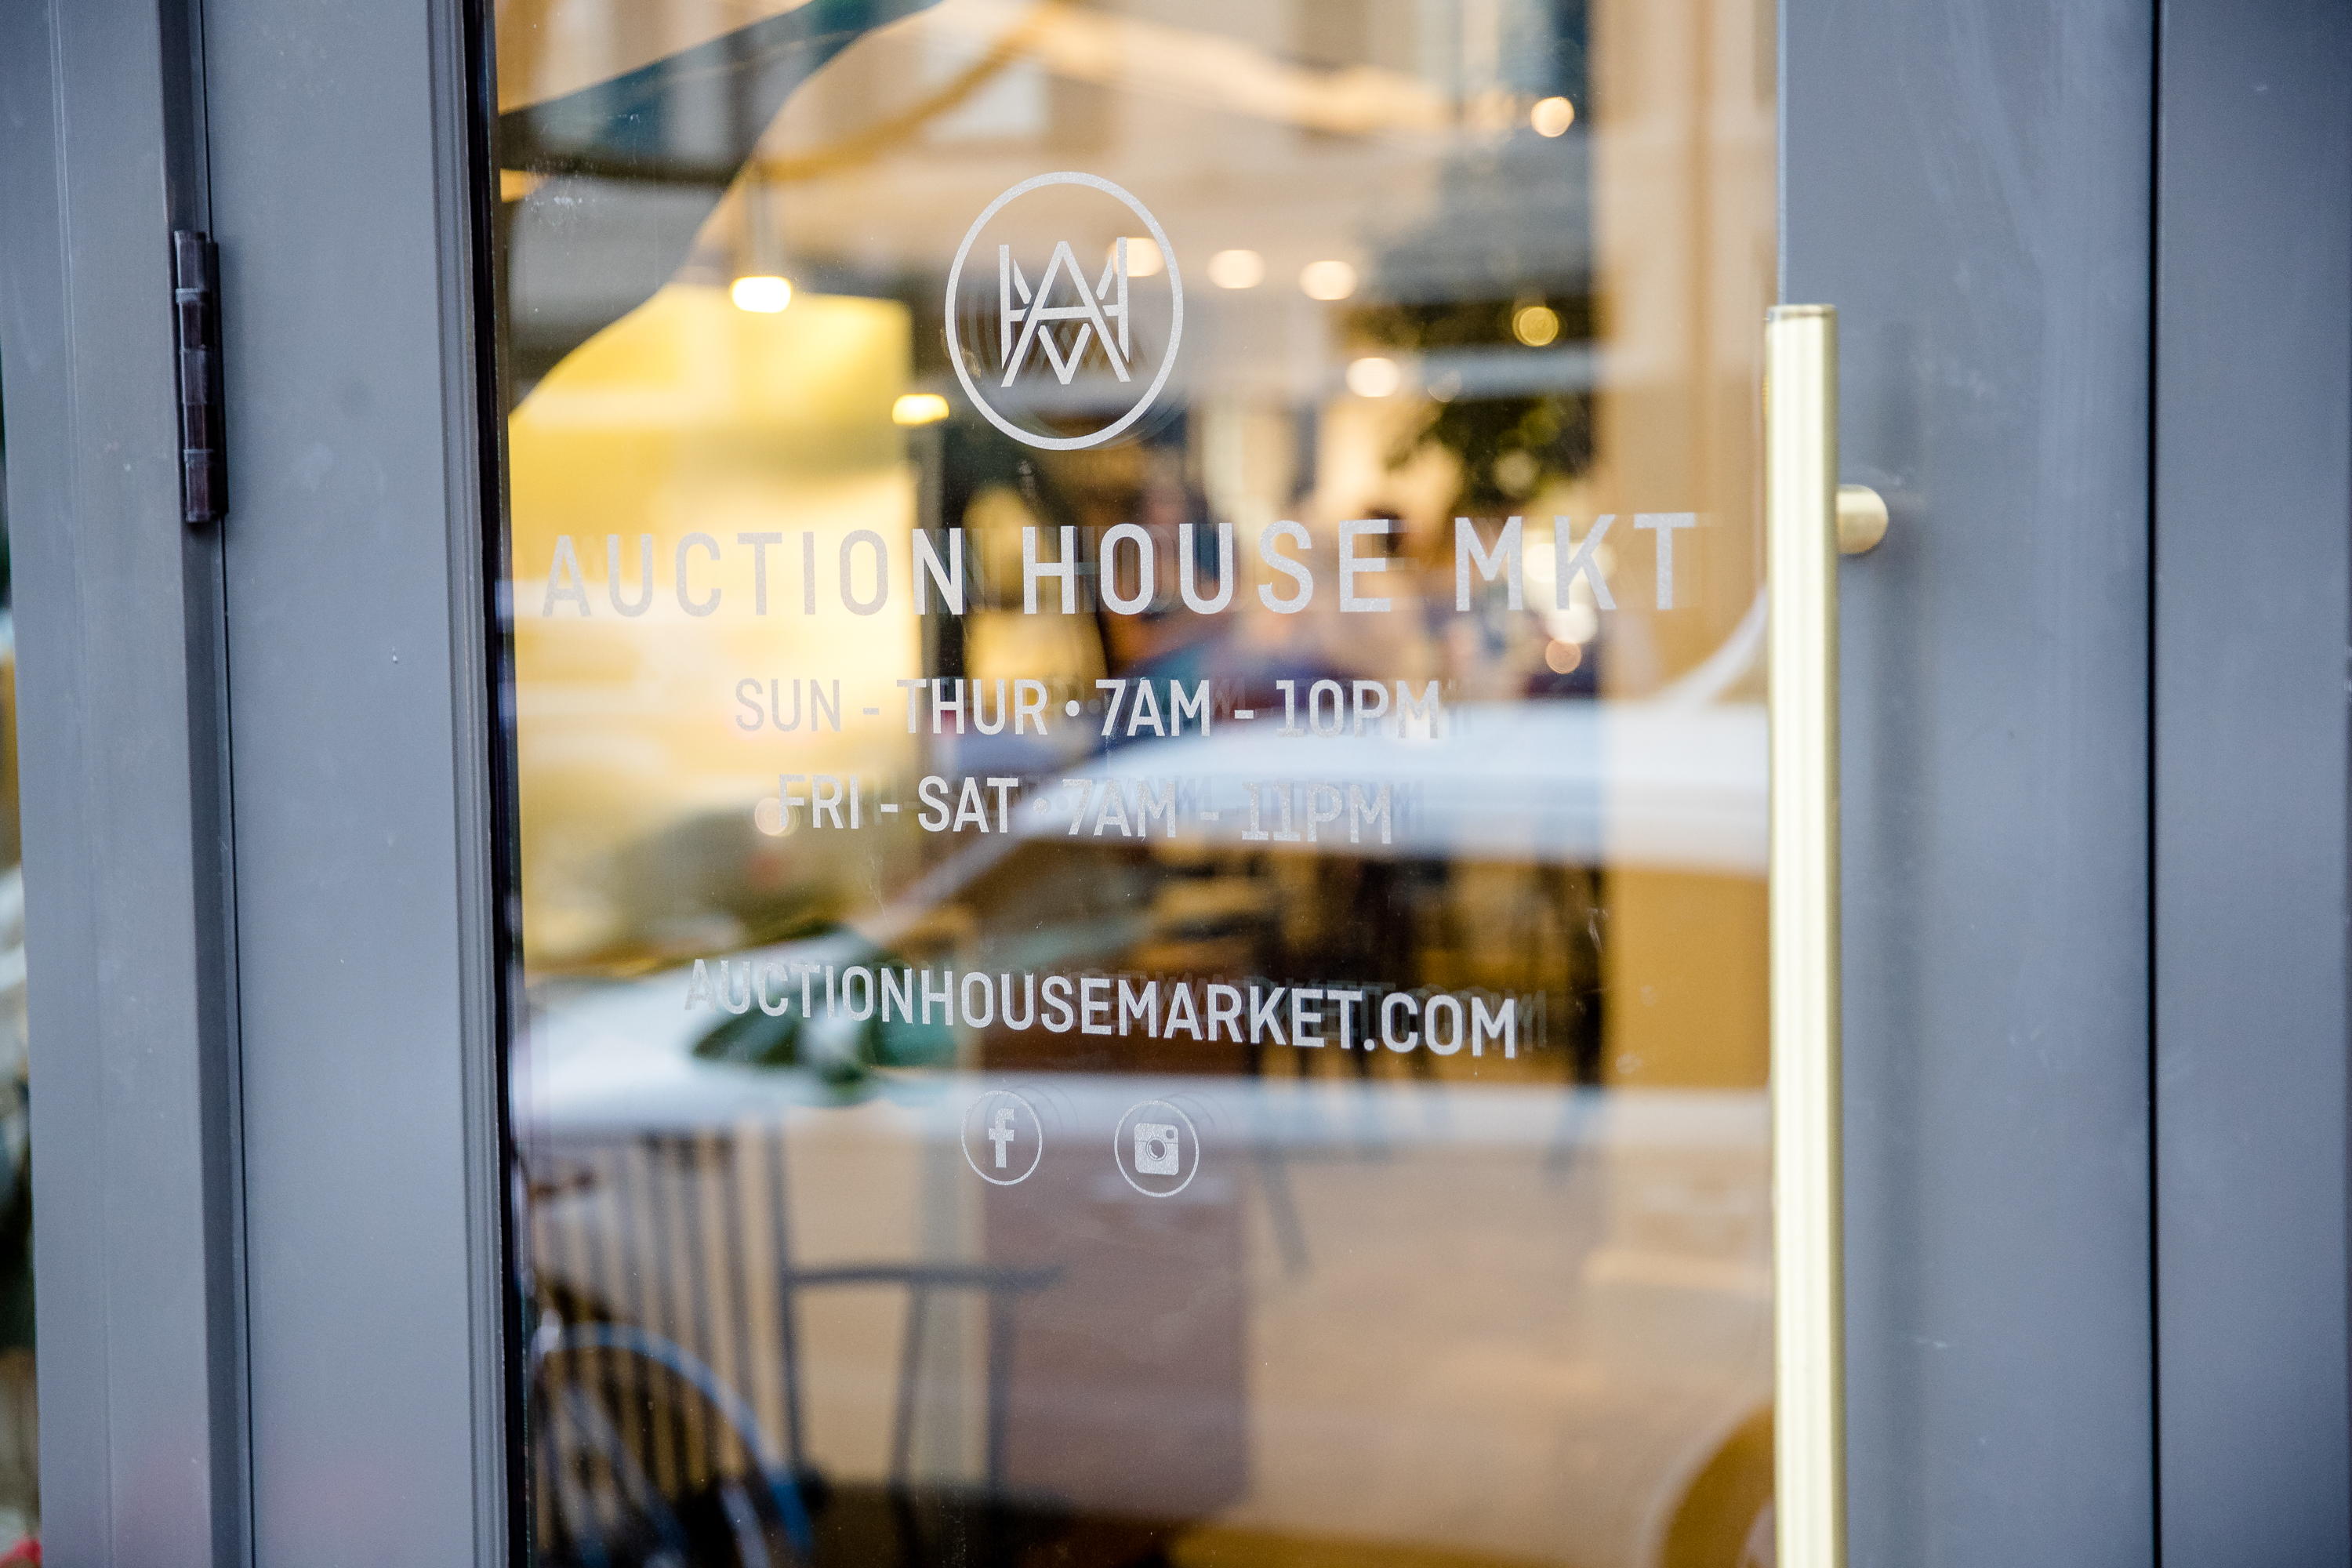 The creators of the St Roch Market sought help from Webre Consulting to obtain permits for their latest project, Auction House Market